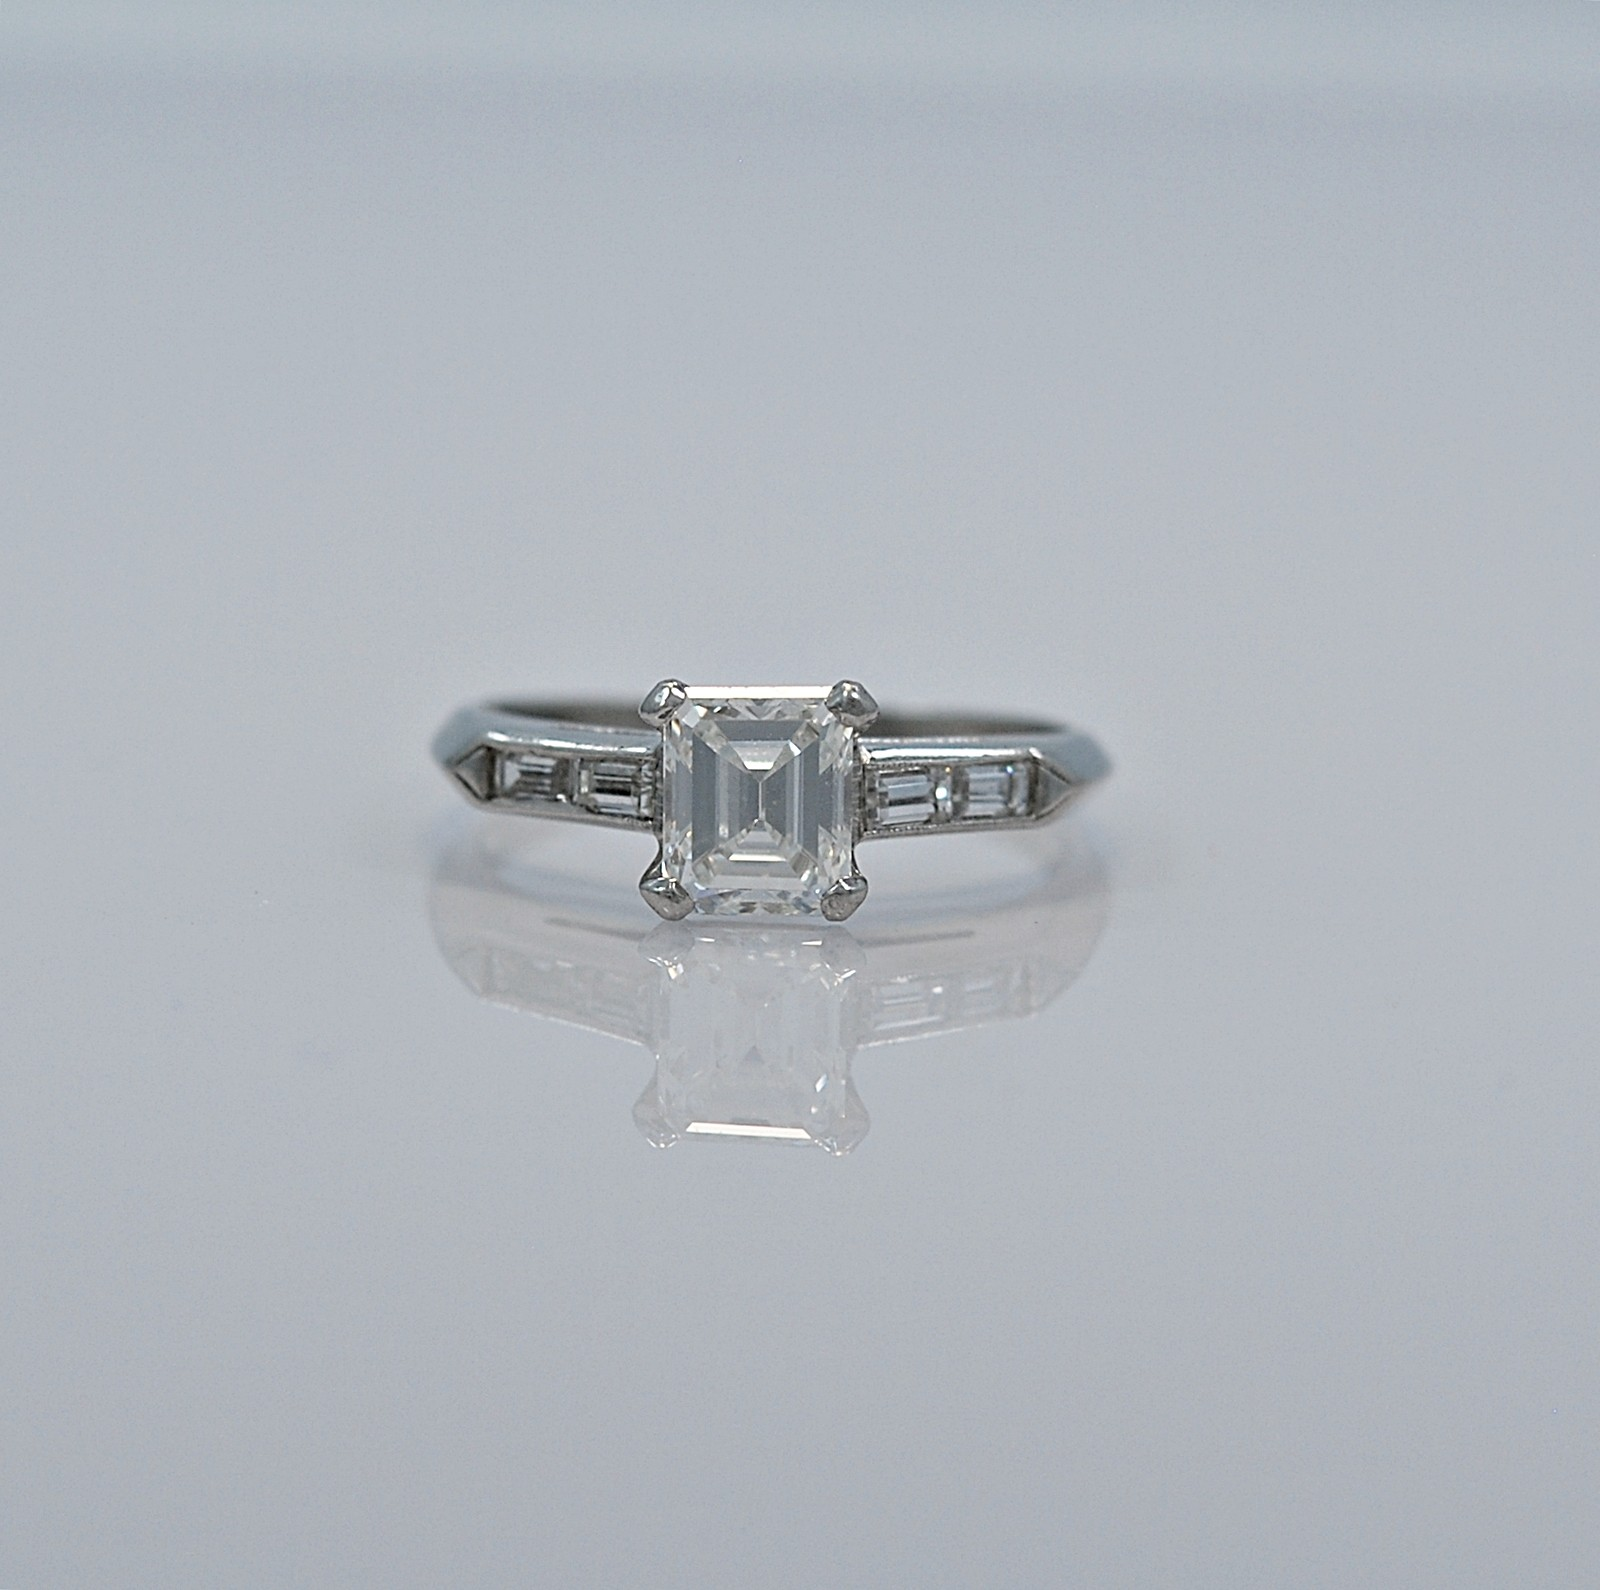 80ct-diamond-platinum-art-deco-engagement-ring-head